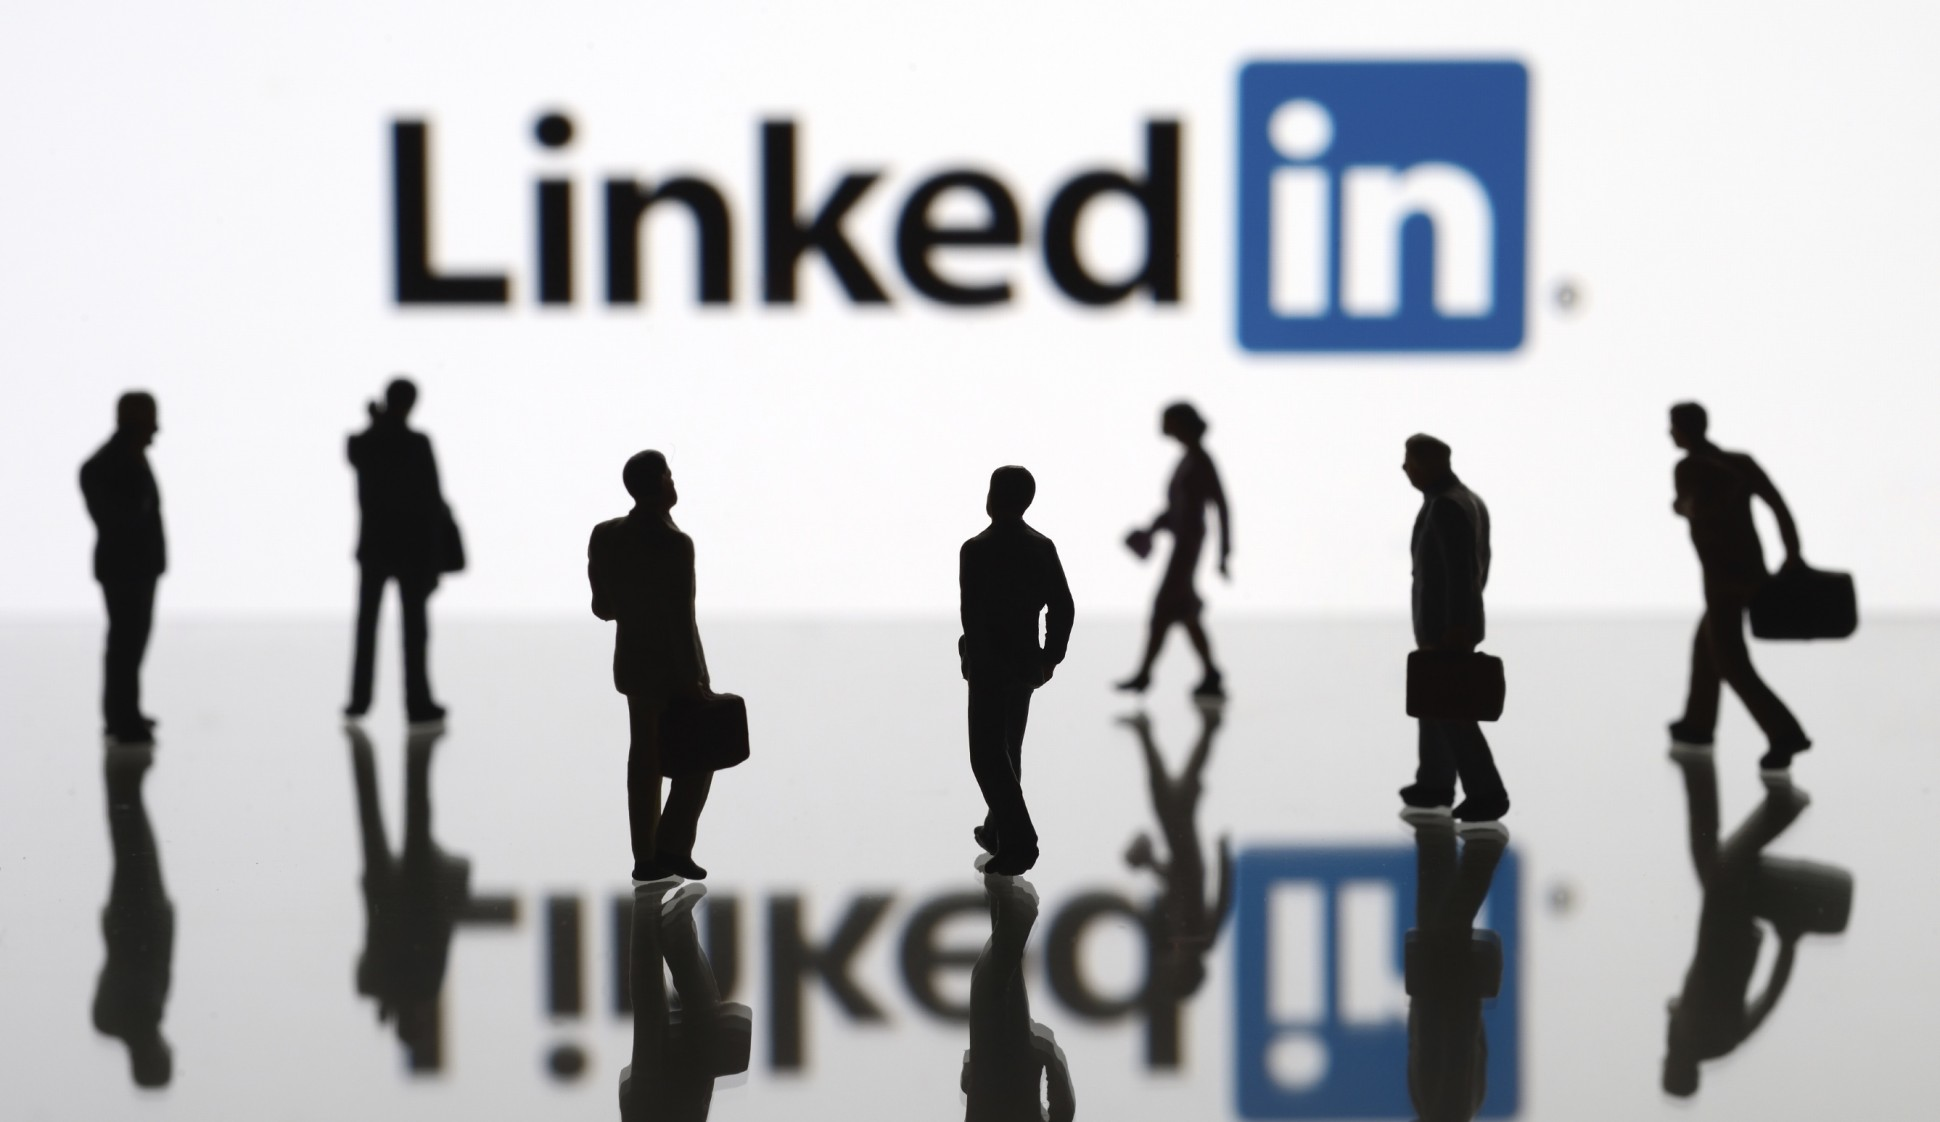 LinkedIn: The New Way of Documenting Recommendations